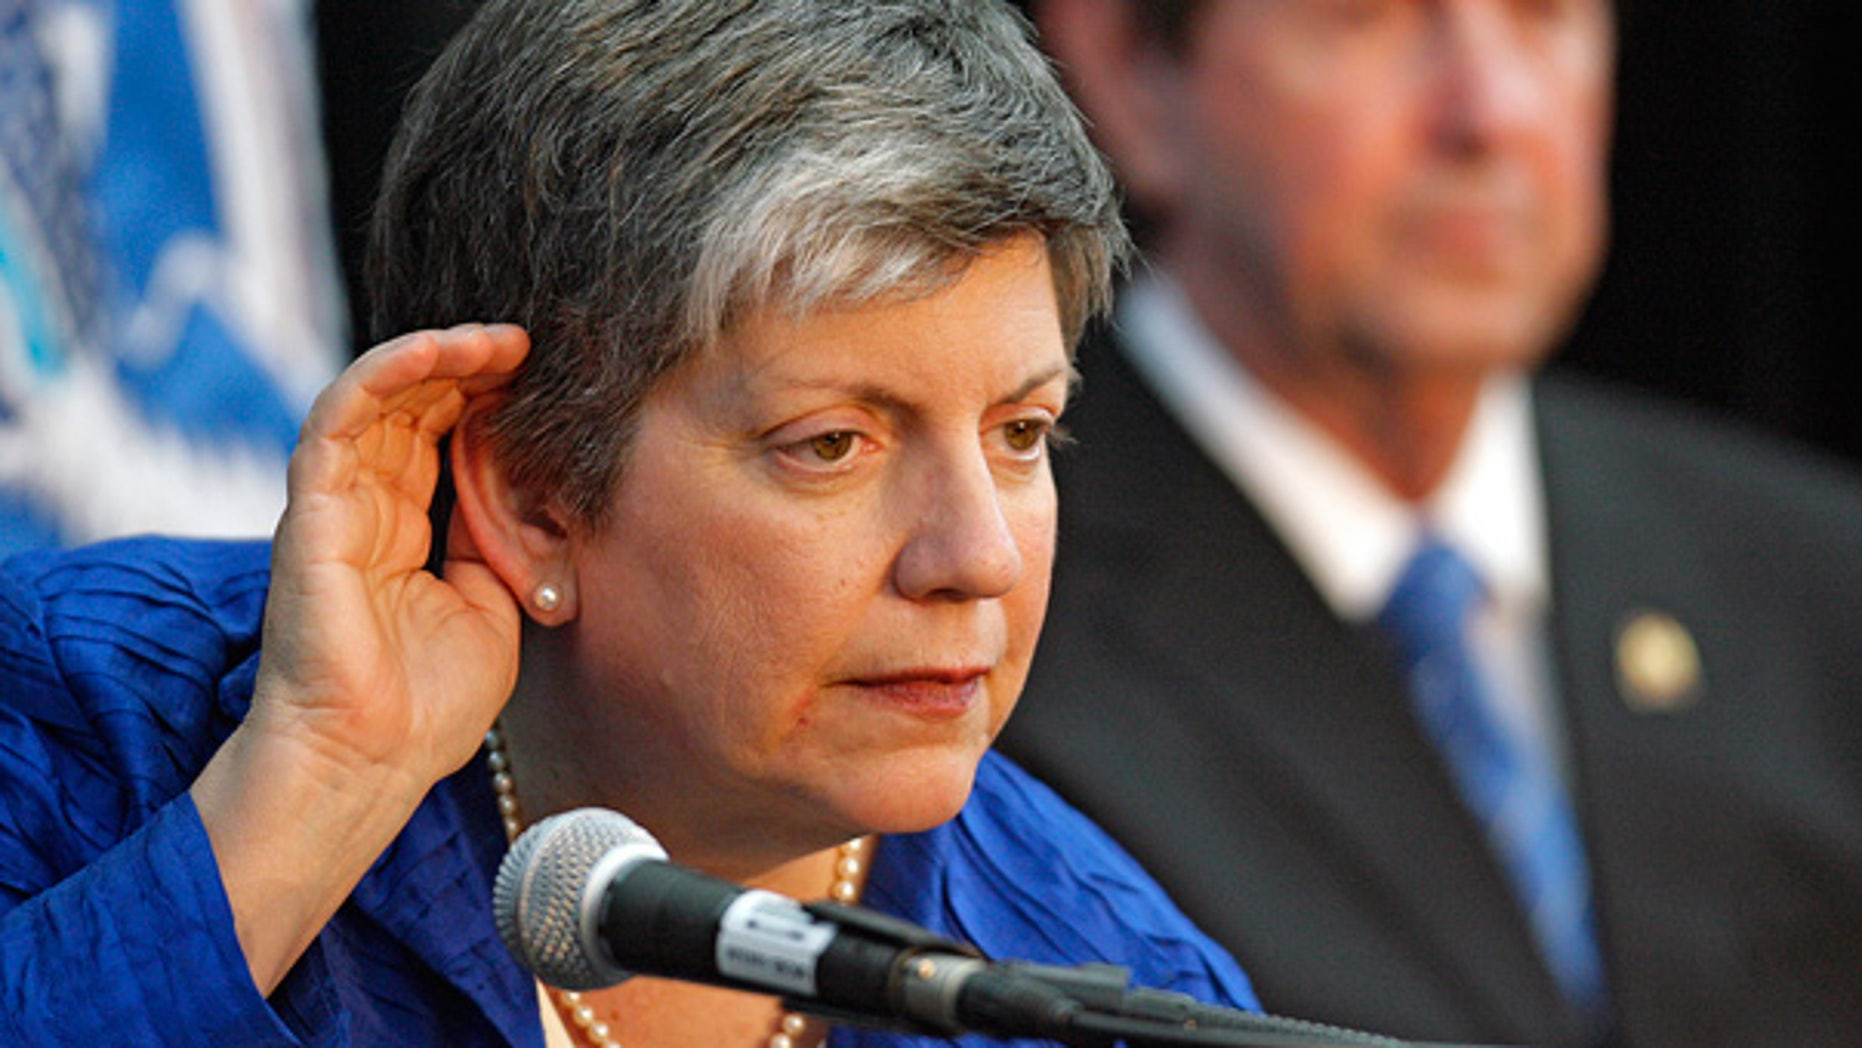 May 11: Homeland Security Director Janet Napolitano listens to a reporter's question in Mobile, Ala.